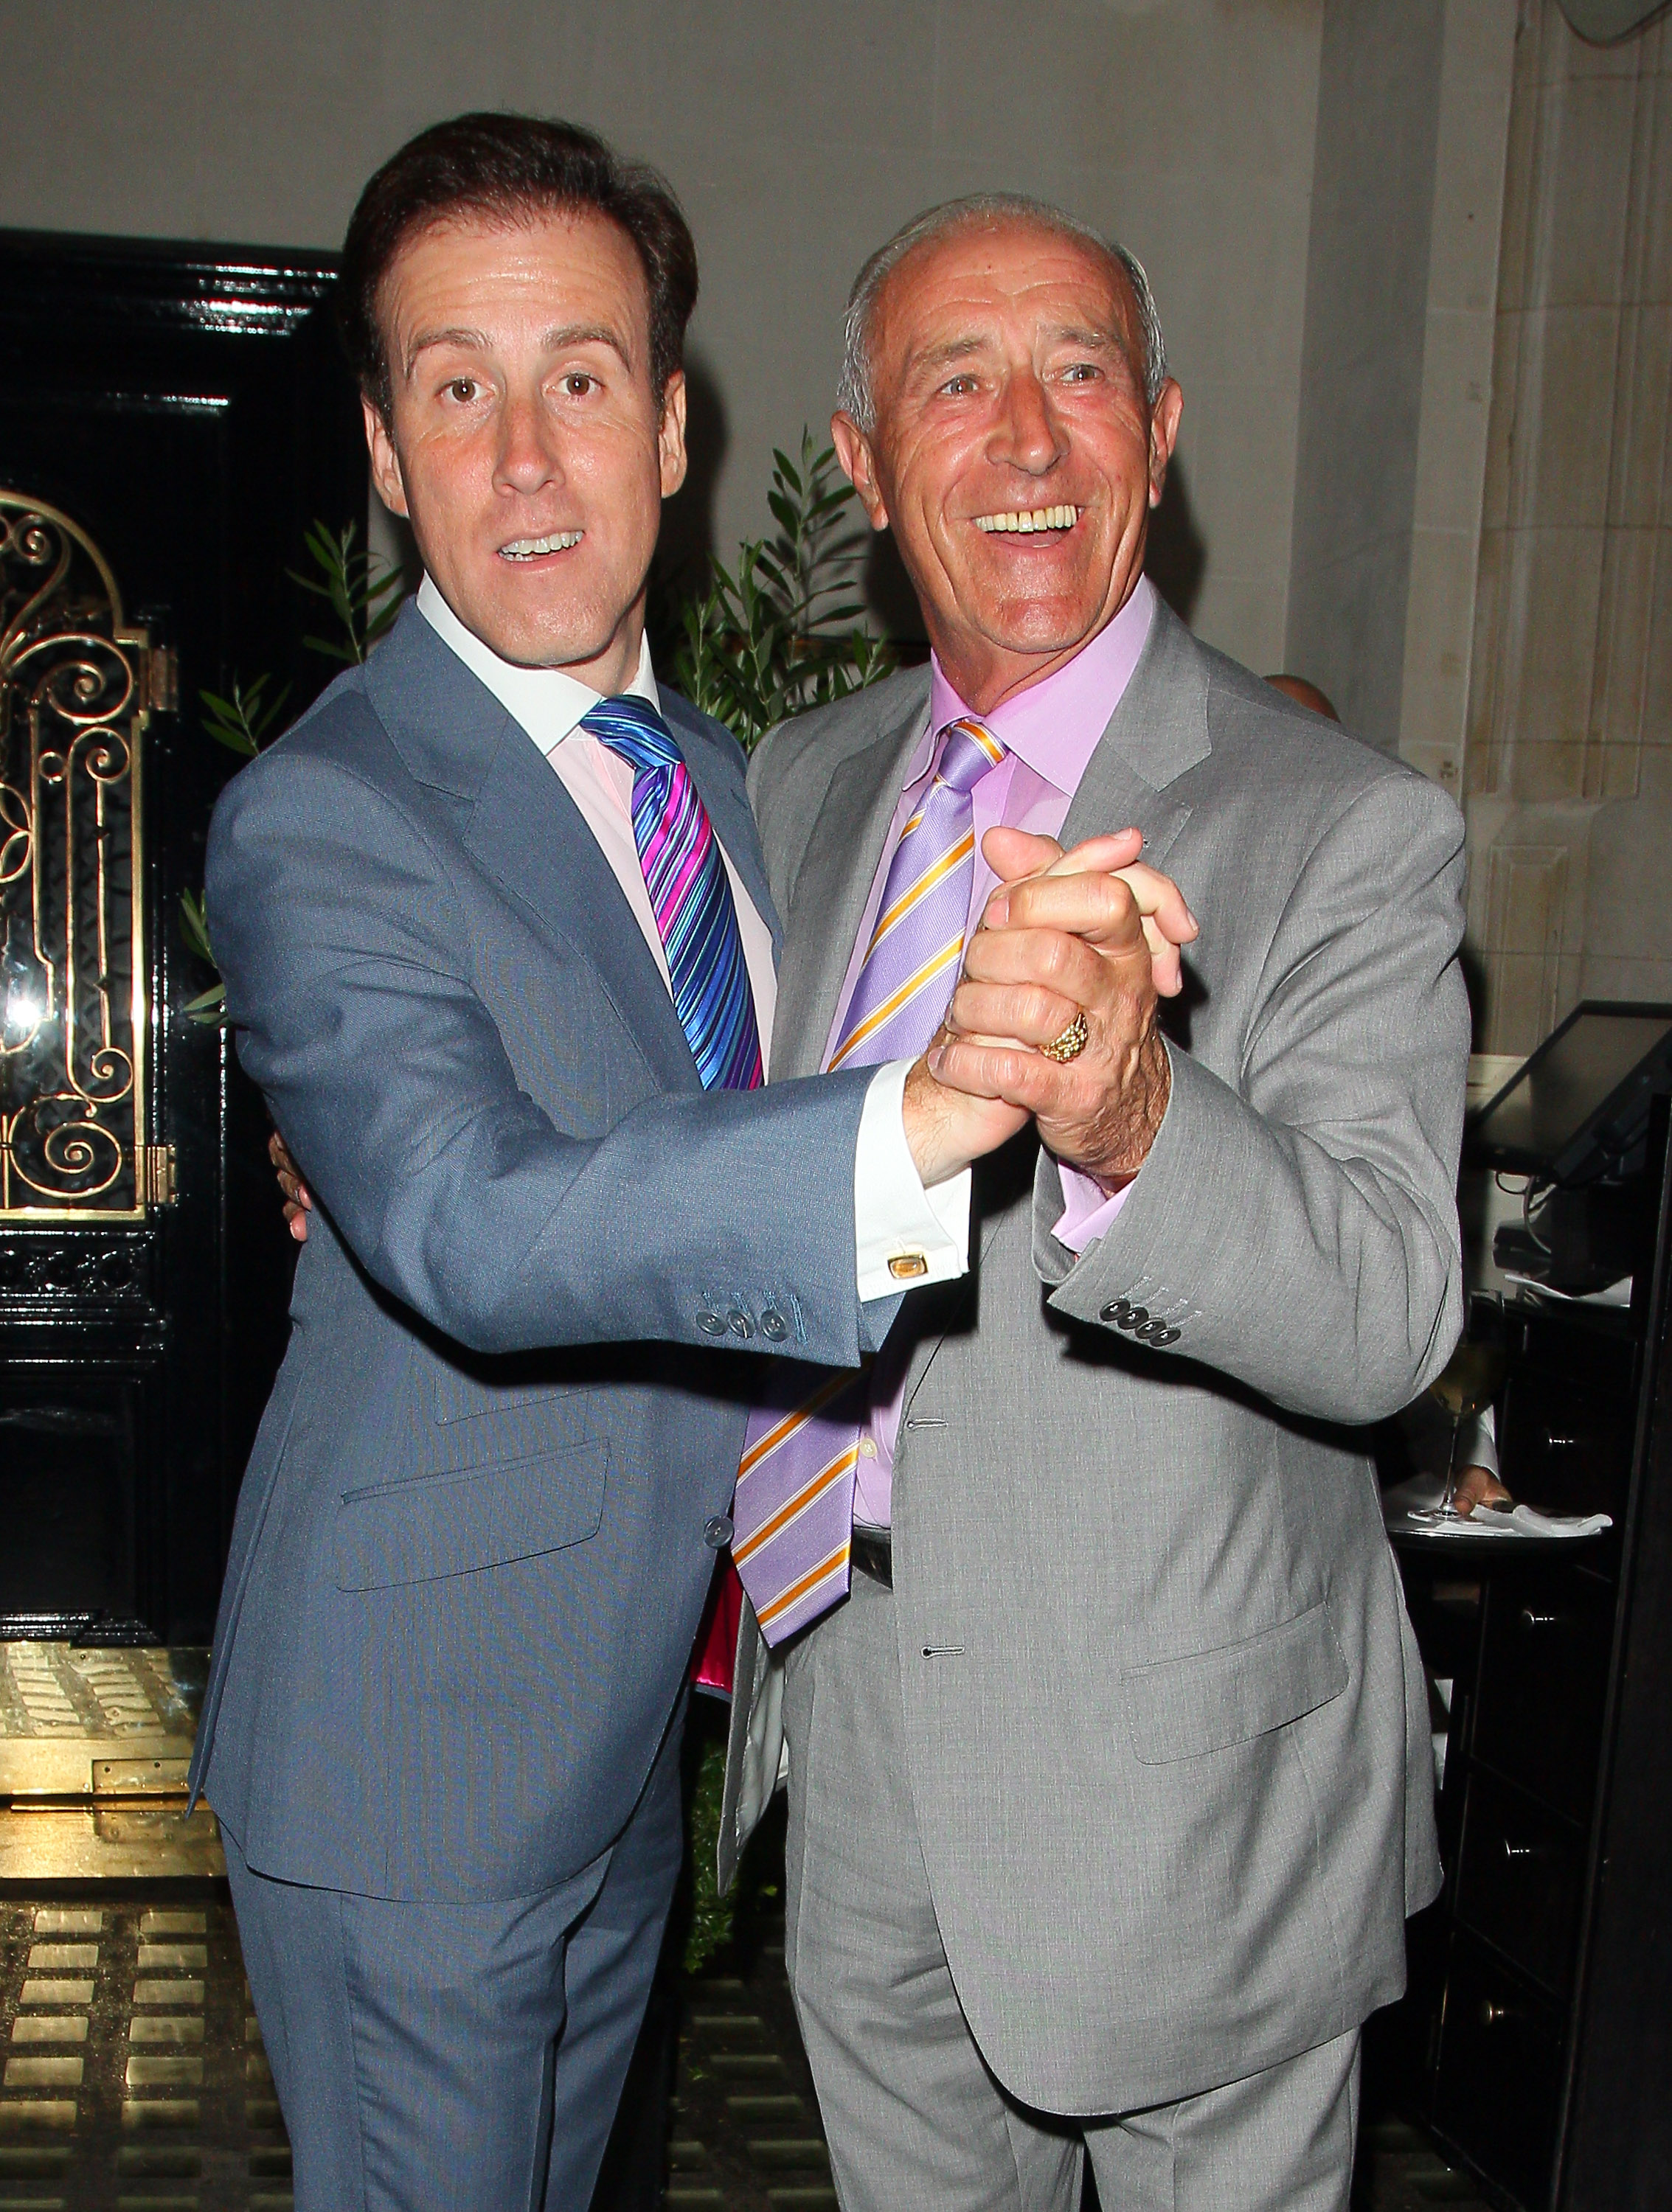 Len Goodman dances with a man Strictly